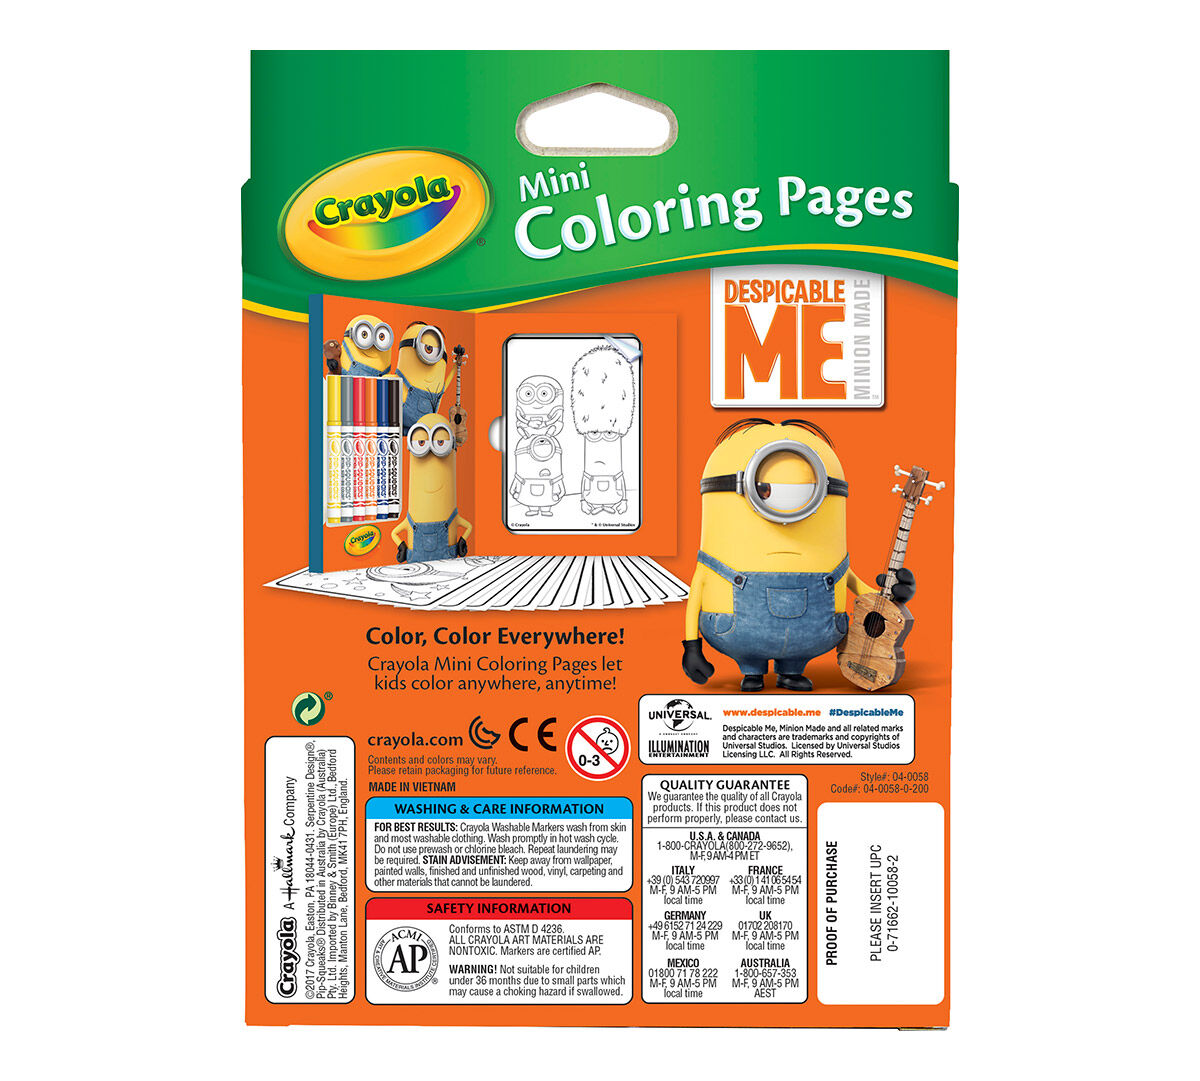 Crayola Mini Coloring Pages Crayola Mini Coloring Pages Despicable Me Edition Art Activity .